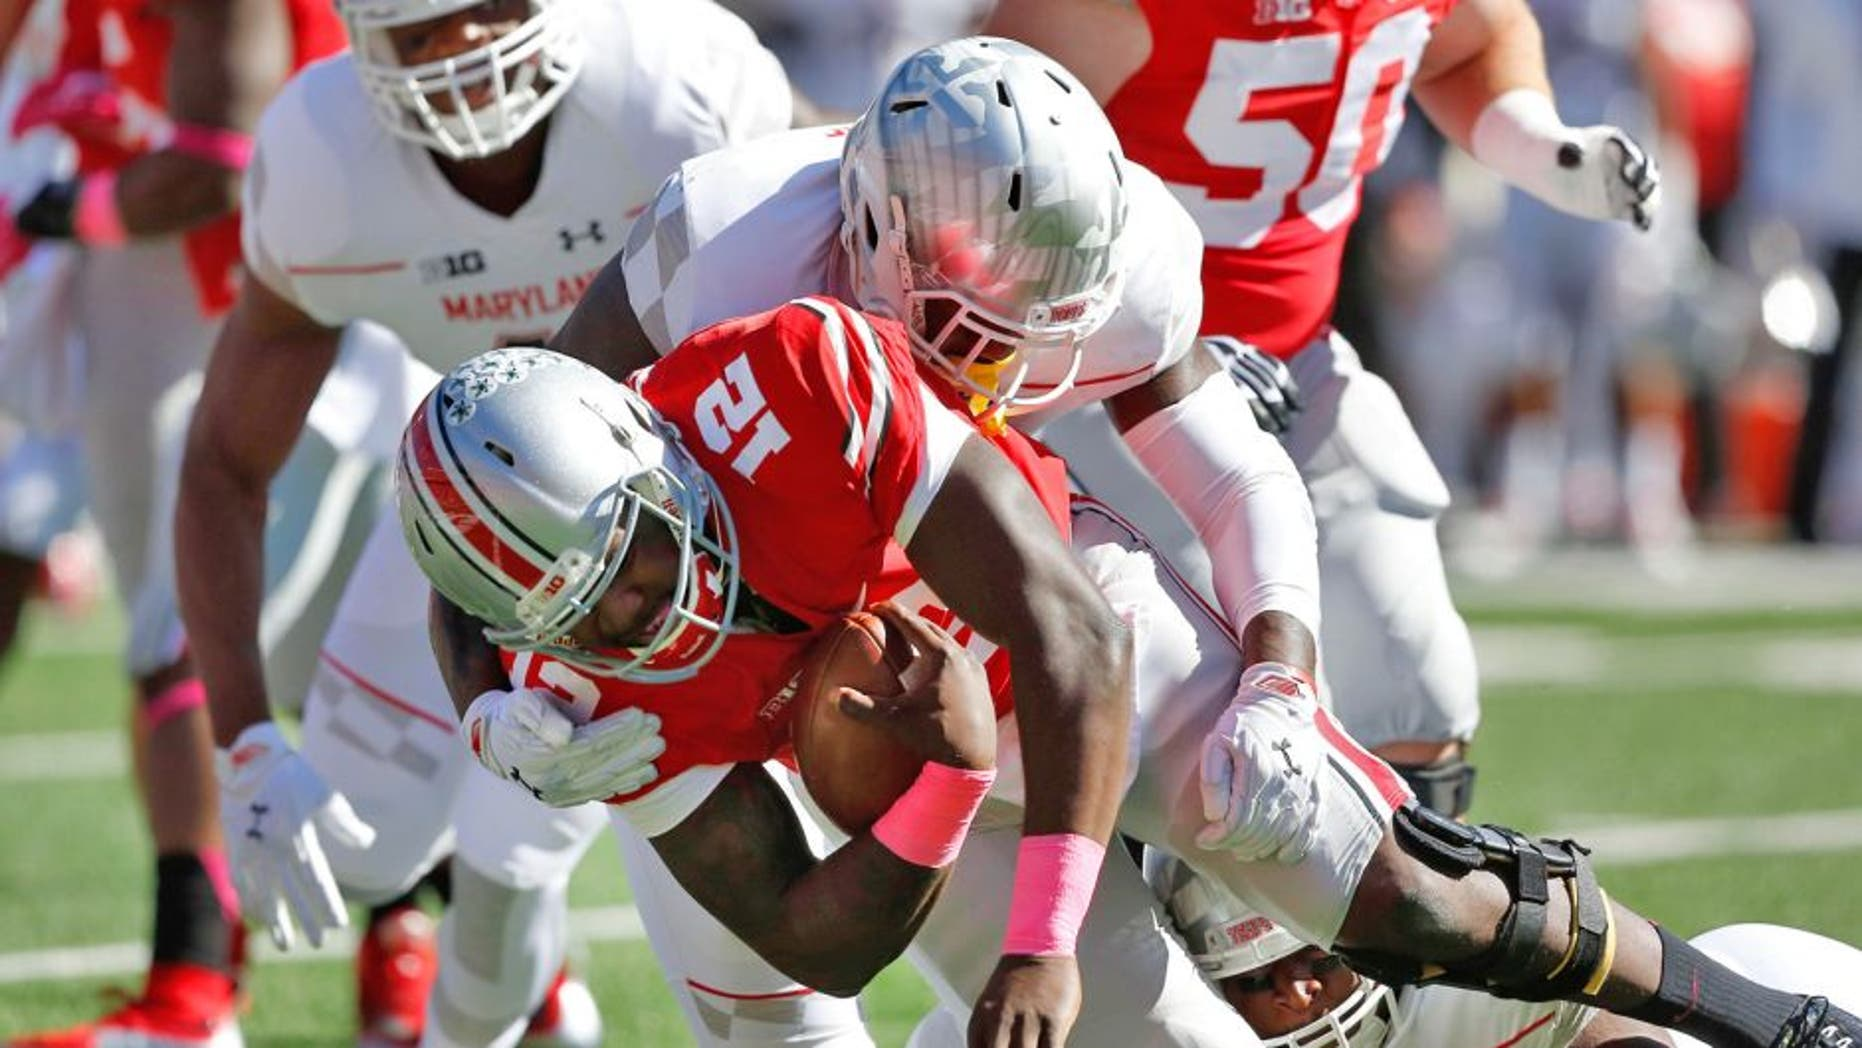 Oct 10, 2015; Columbus, OH, USA; Ohio State Buckeyes quarterback Cardale Jones (12) is sacked by Maryland Terrapins defensive lineman Yannick Ngakoue (7) during the first quarter at Ohio Stadium. Mandatory Credit: Joe Maiorana-USA TODAY Sports